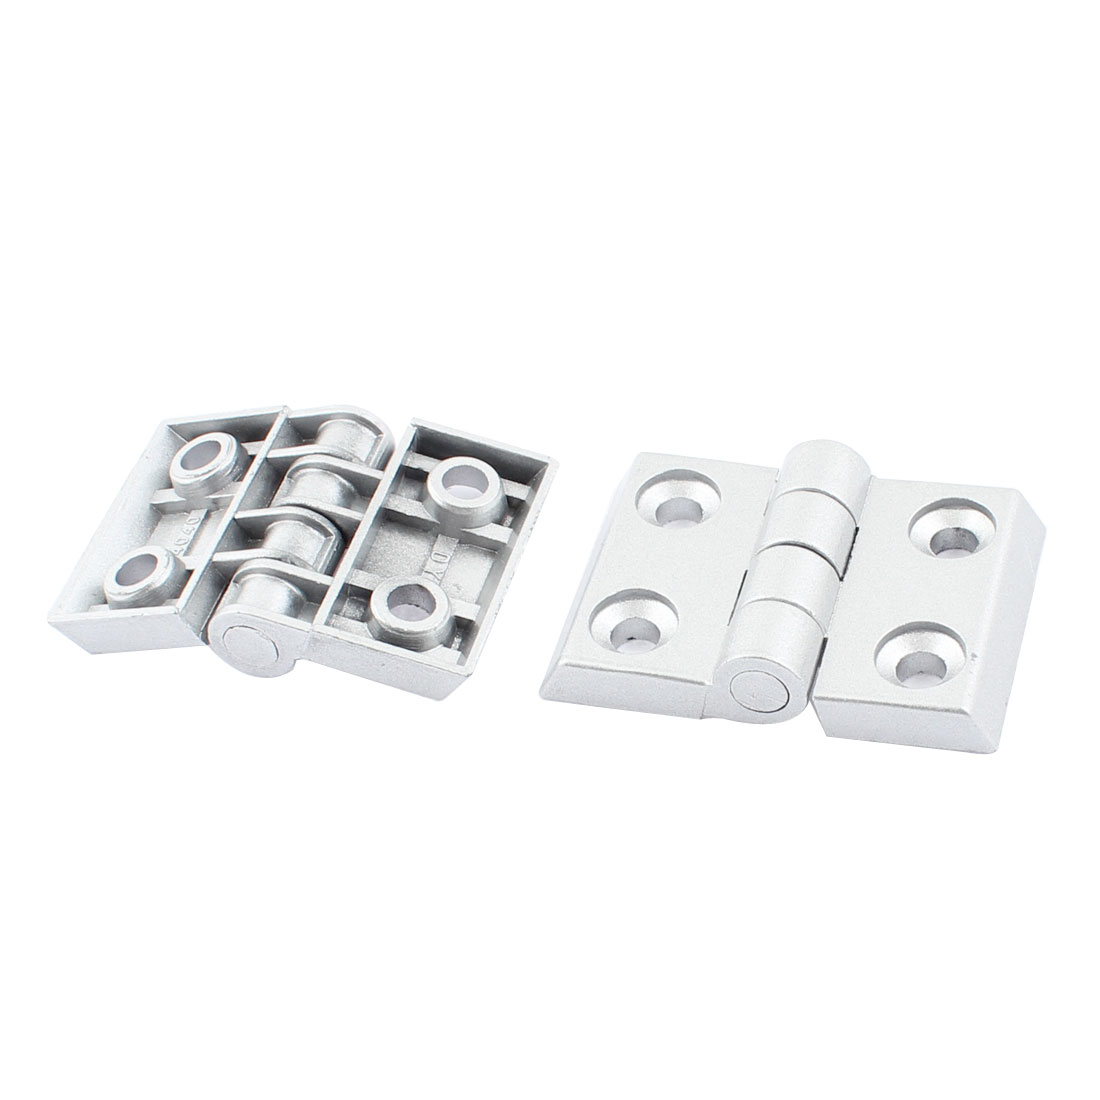 64mm x 45mm x 13mm Cupboard Cabinet Door Metal Butt Hinge Silver Tone 2pcs